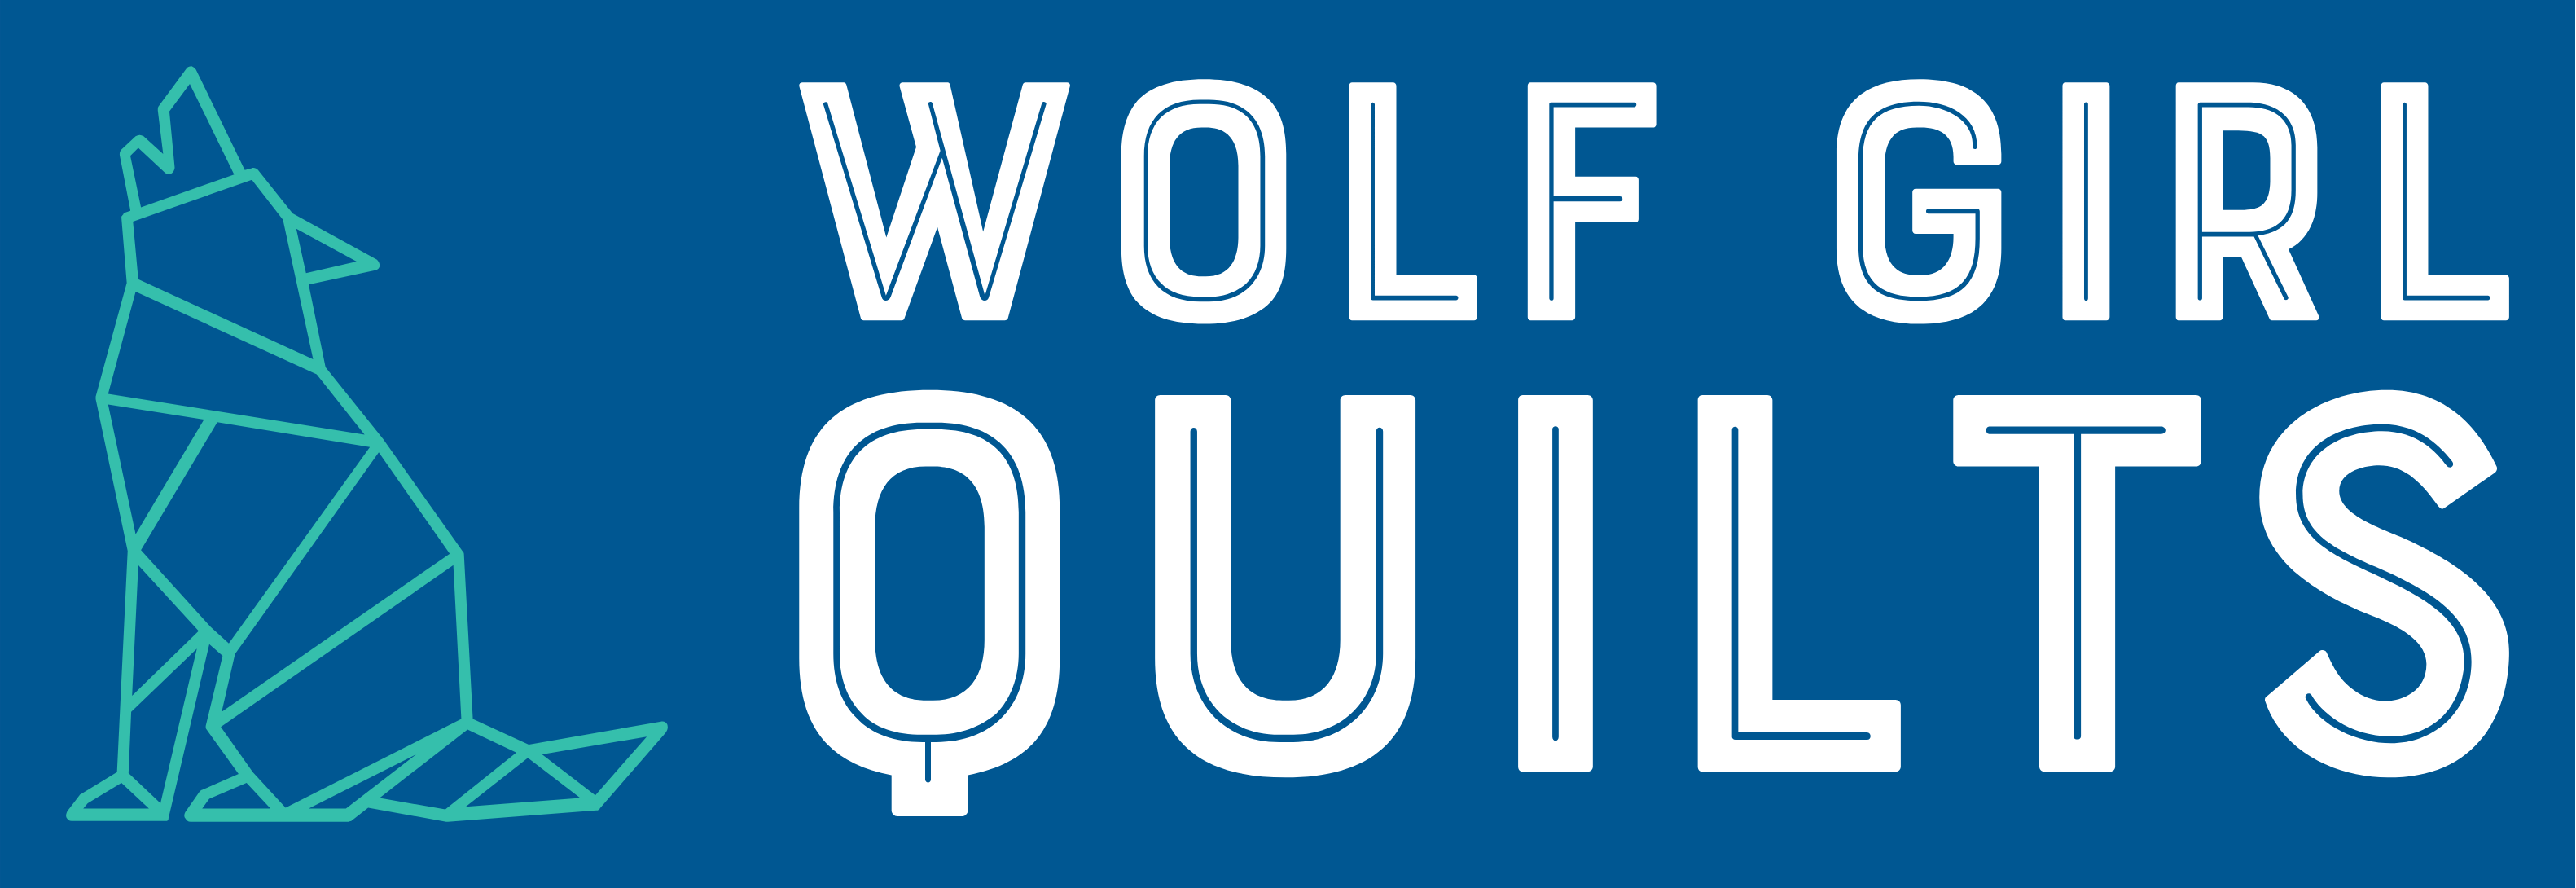 Wolf Girl Quilts